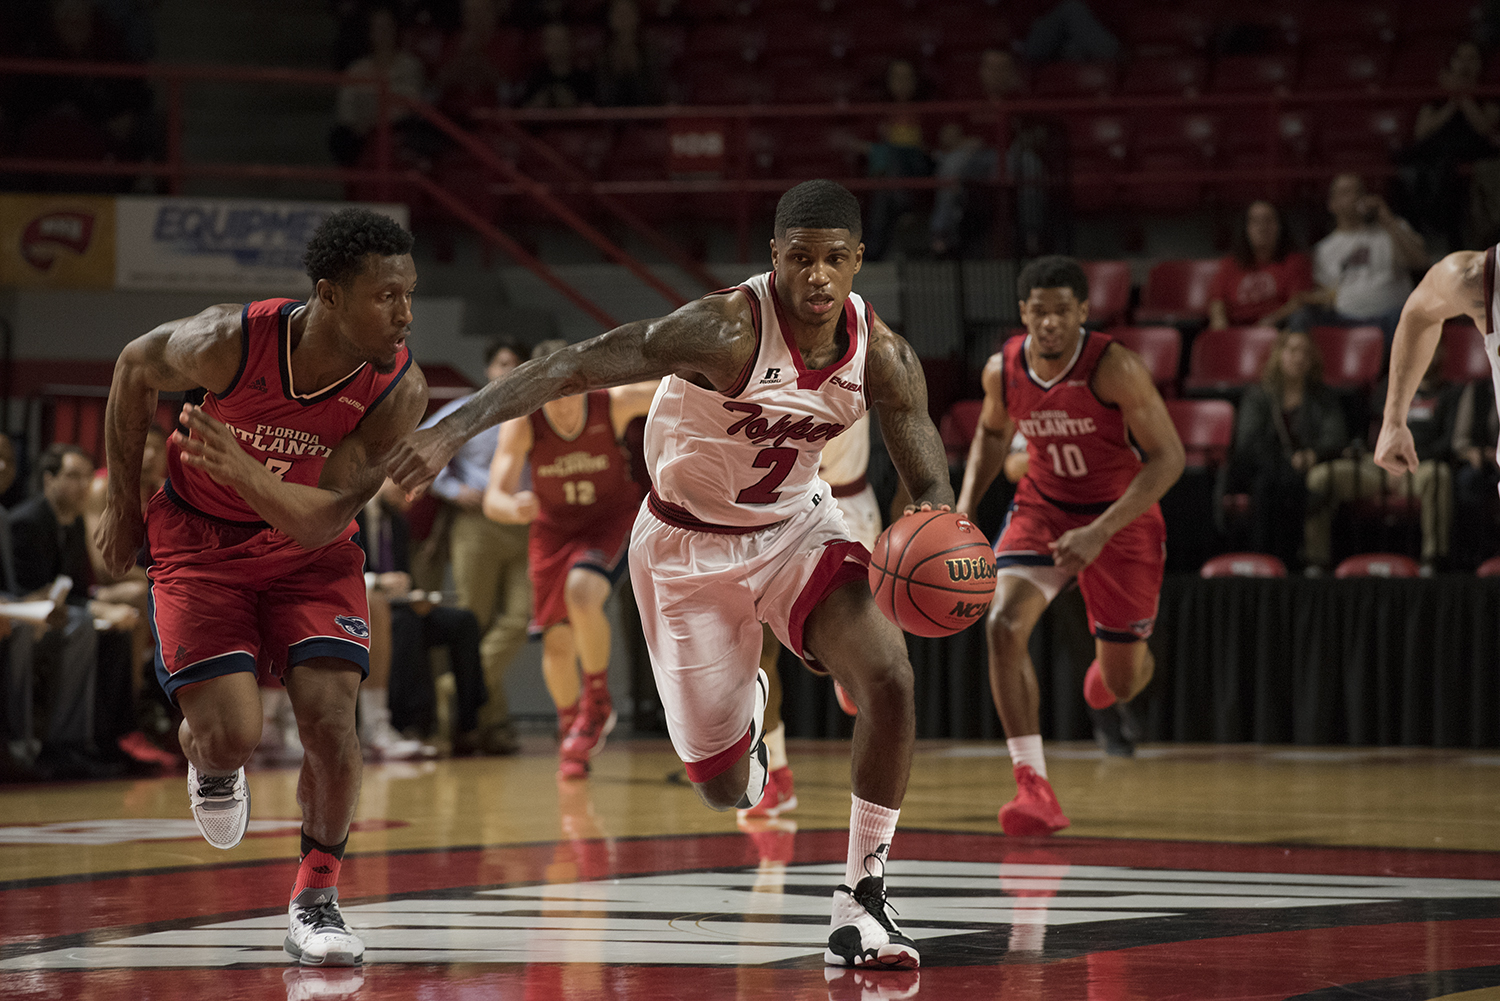 Redshirt+senior+guard+Aaron+Cosby+drives+the+ball+down+the+court+after+stealing+it+from+Florida+Atlantic+junior+Adonis+Filer+during+the+second+half+of+WKU%27s+game+against+the+Owls+on+Saturday.+Cosby+scored+17+points+on+the+day.+Jennifer+King%2FHERALD